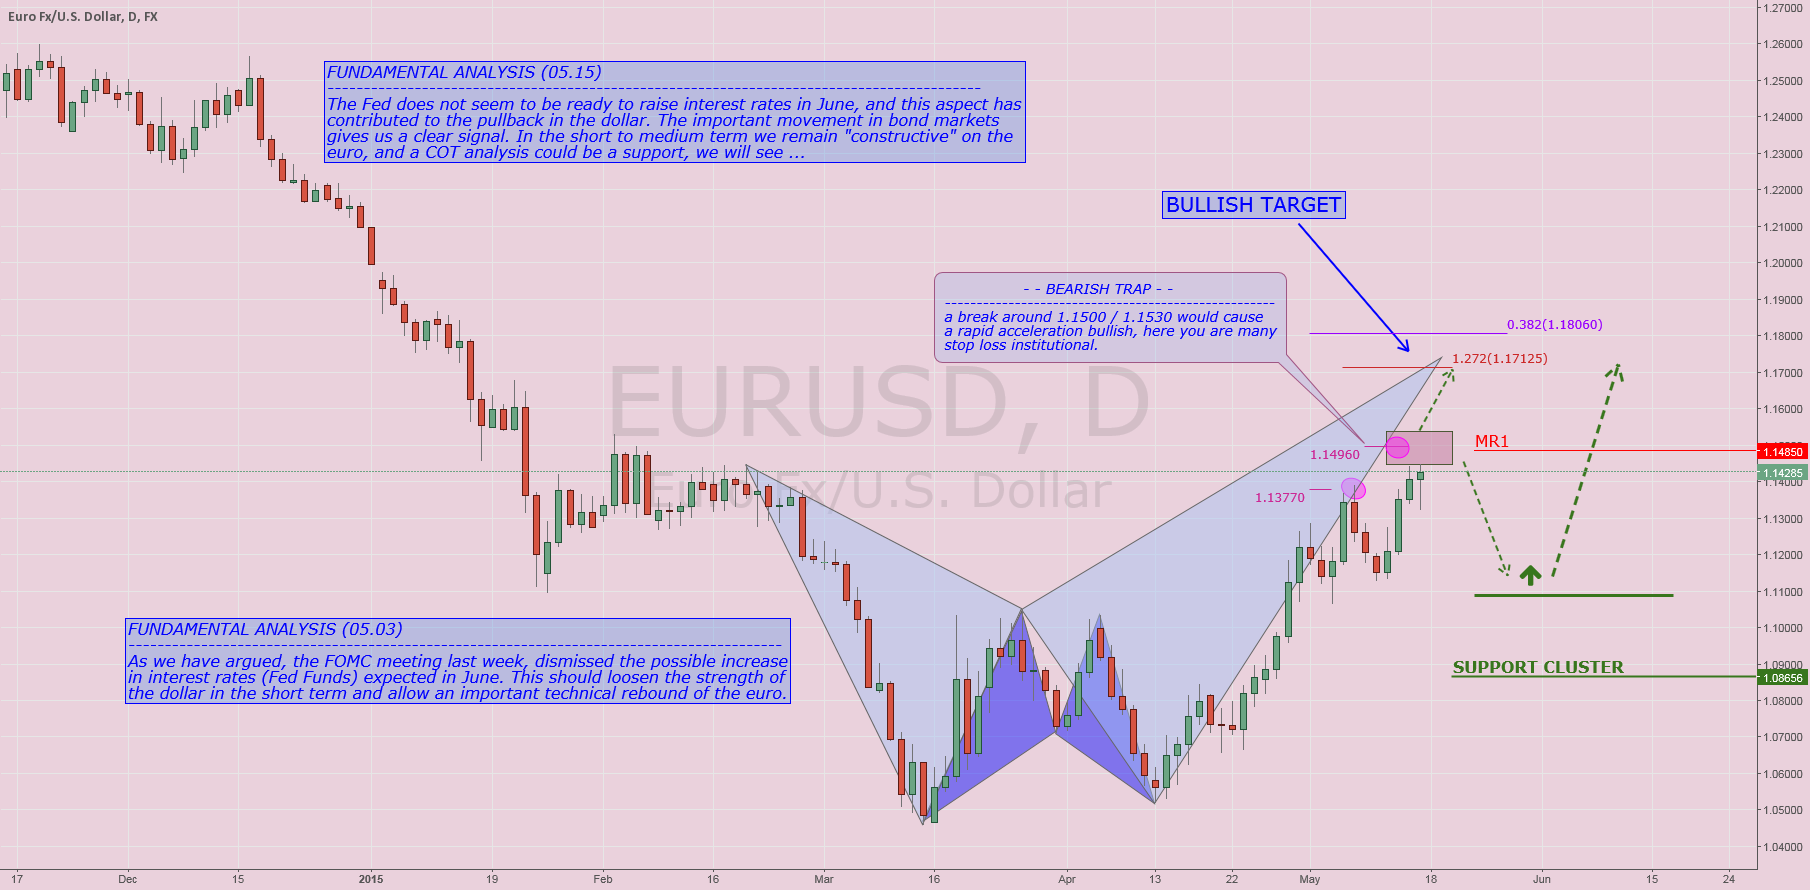 EURUSD: Bearish Trap? Construction model